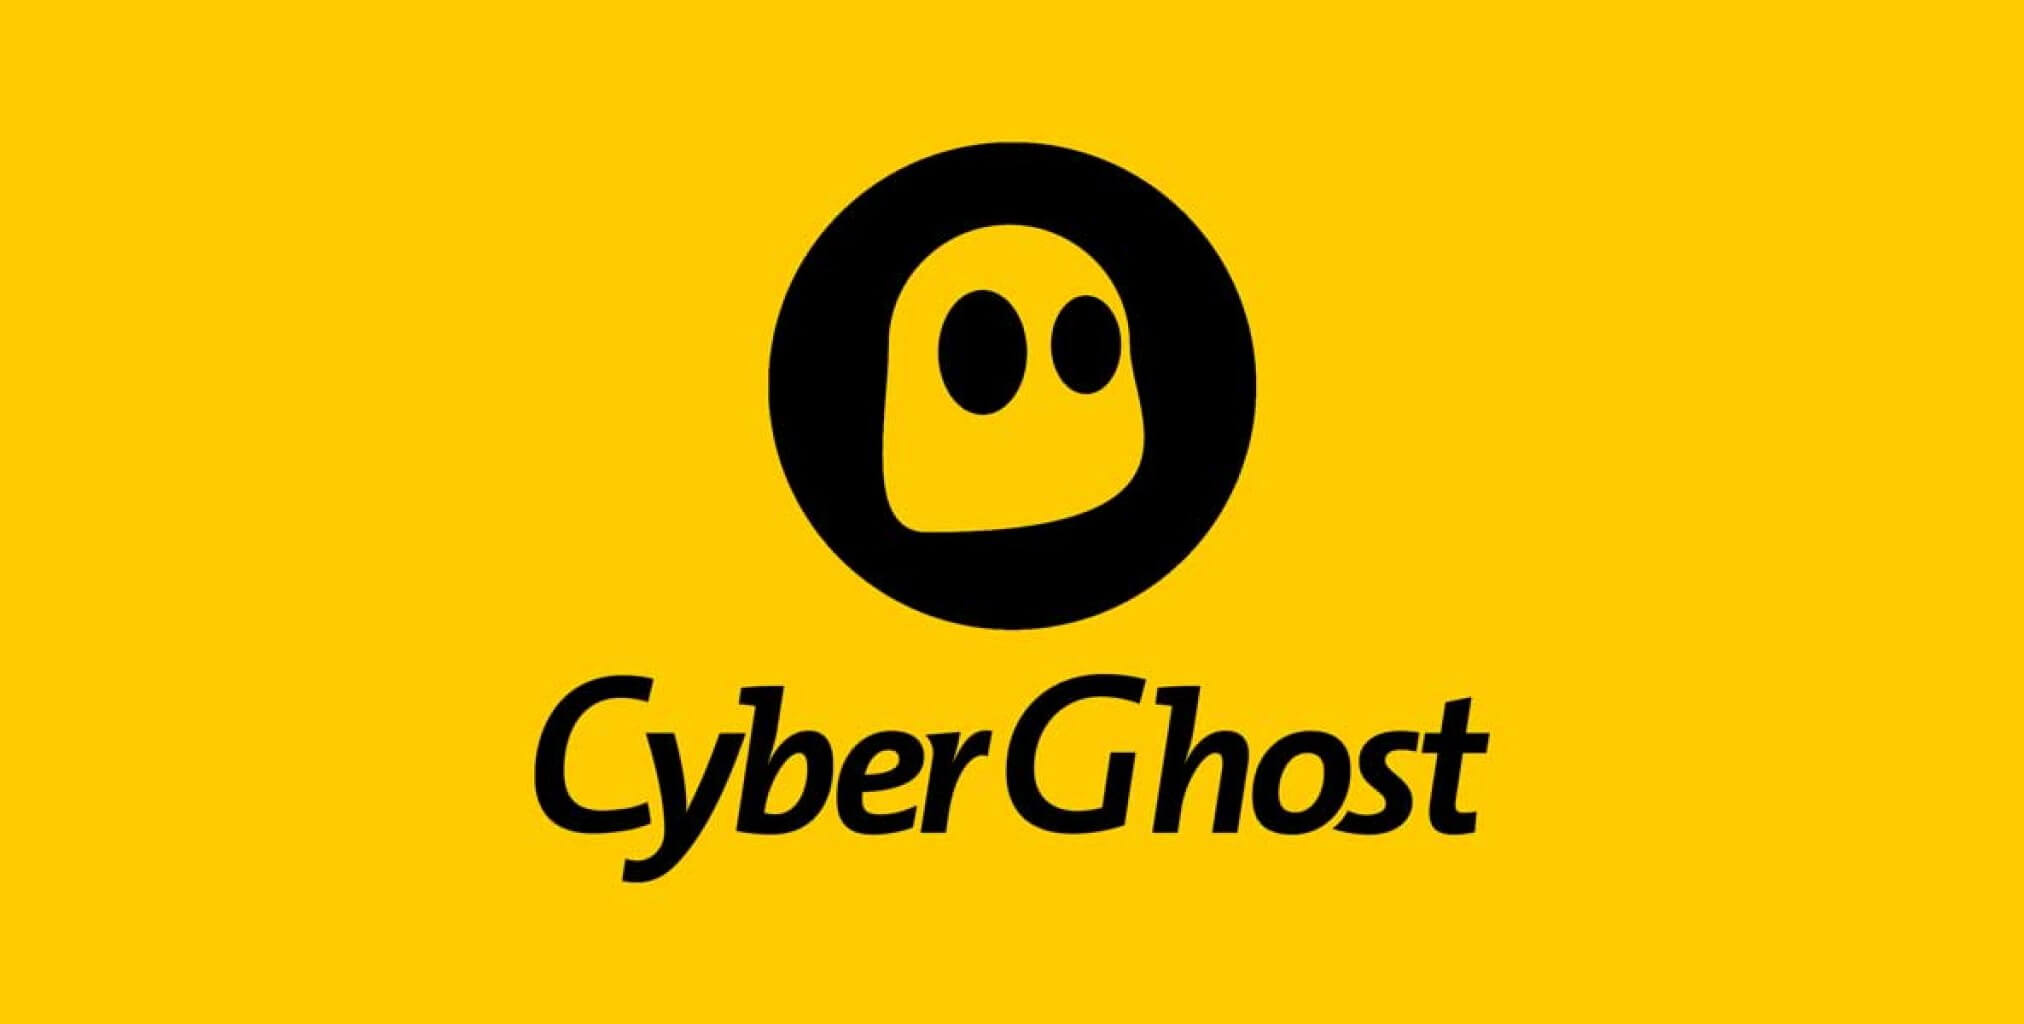 CyberGhost VPN Crack 7.3.11.5337 With Serial Key Download